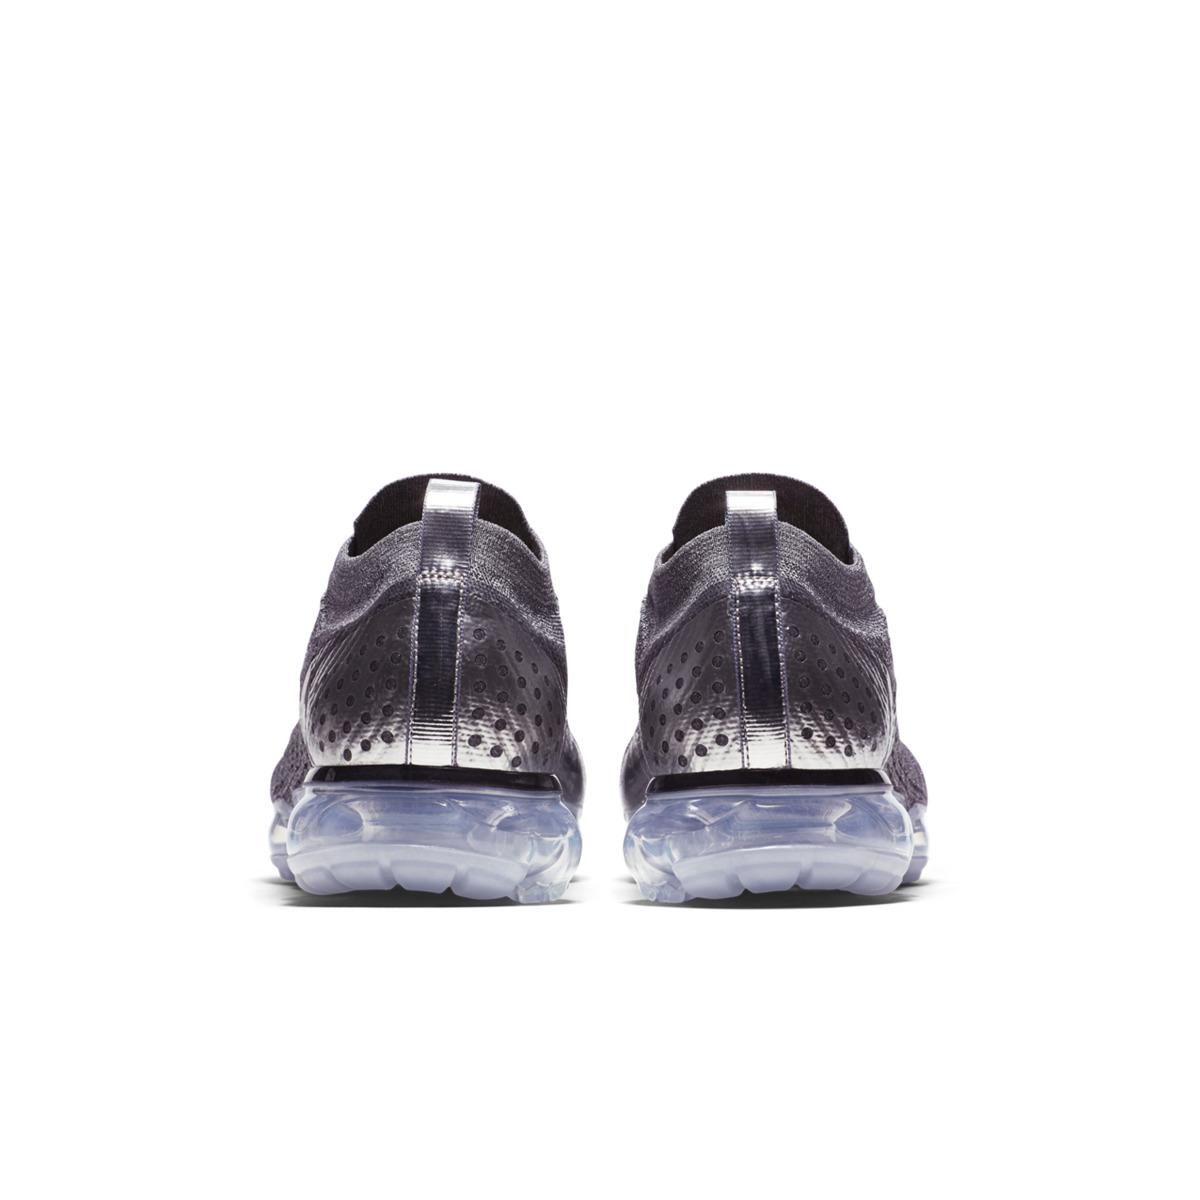 8c803475f27 Nike - Gray Air Vapormax Flyknit 2 Casual Trainers for Men - Lyst. View  fullscreen